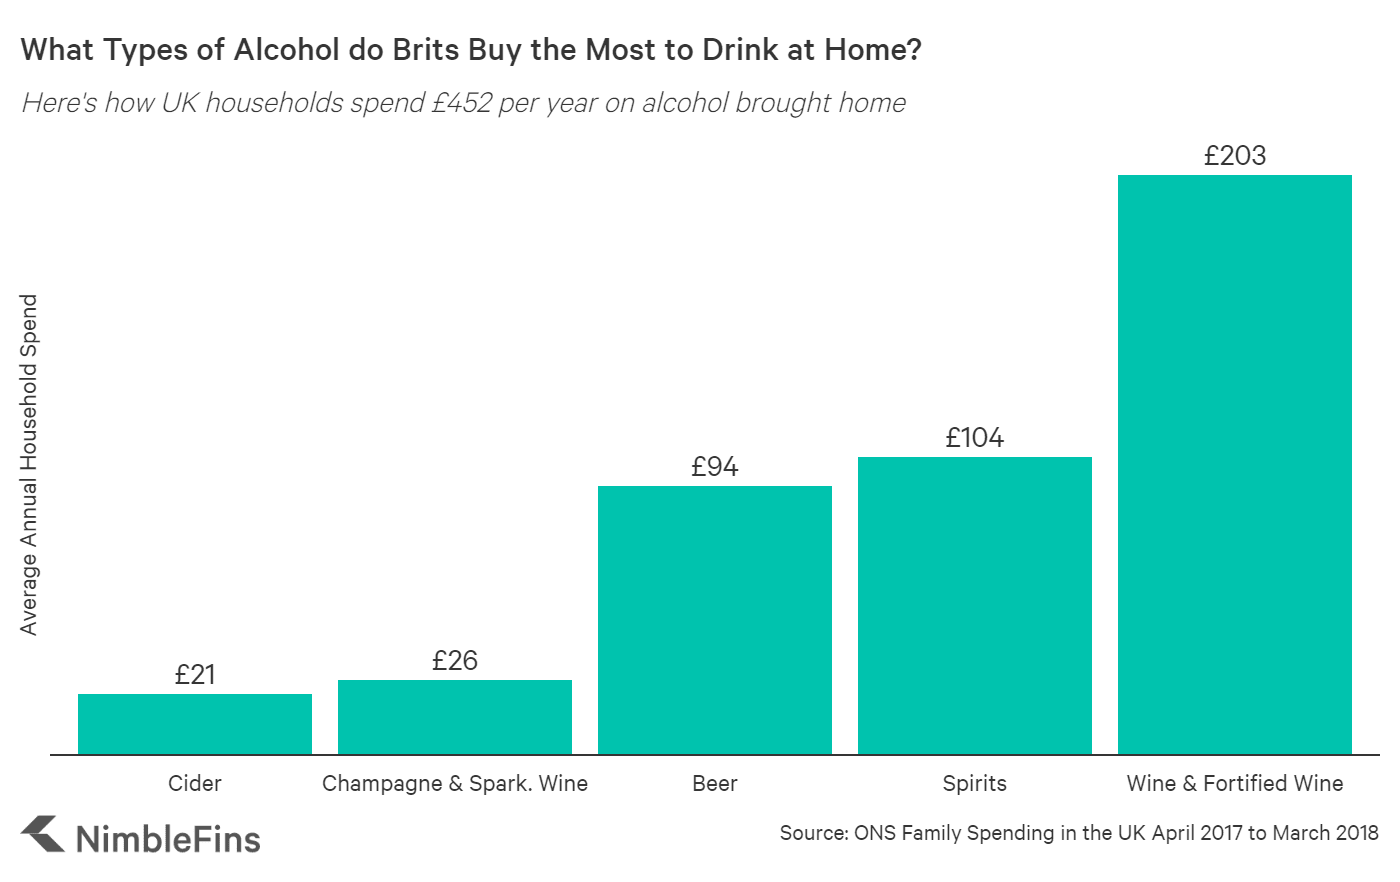 chart showing annual UK alcohol spending by type of alcohol